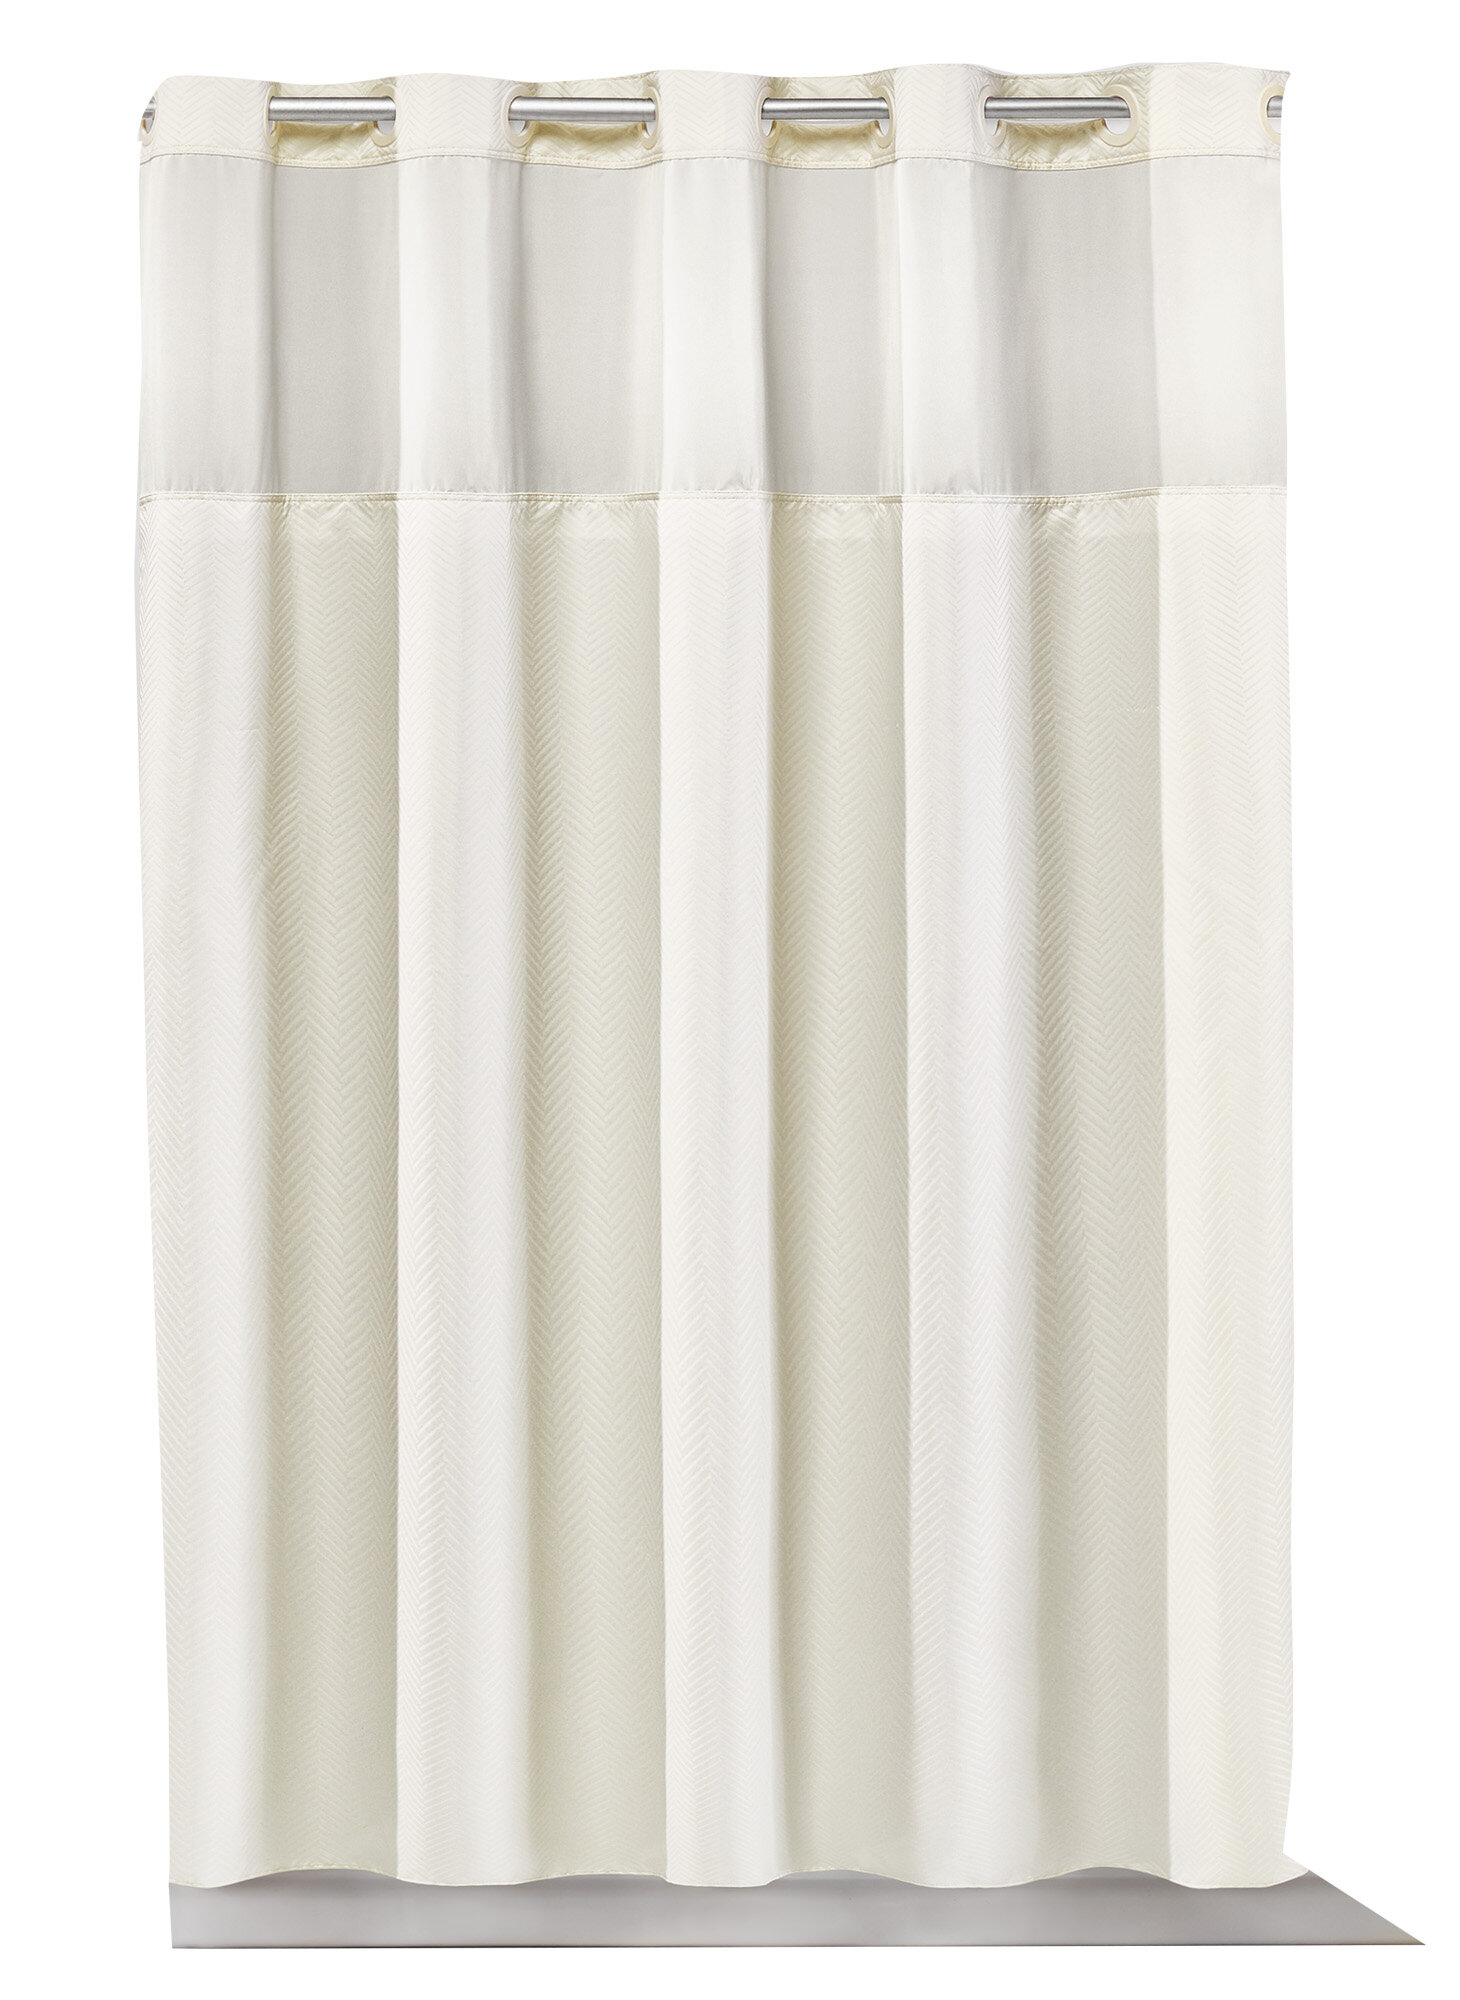 Hookless Montage Chevron Plain Weave Shower Curtain With Fabric